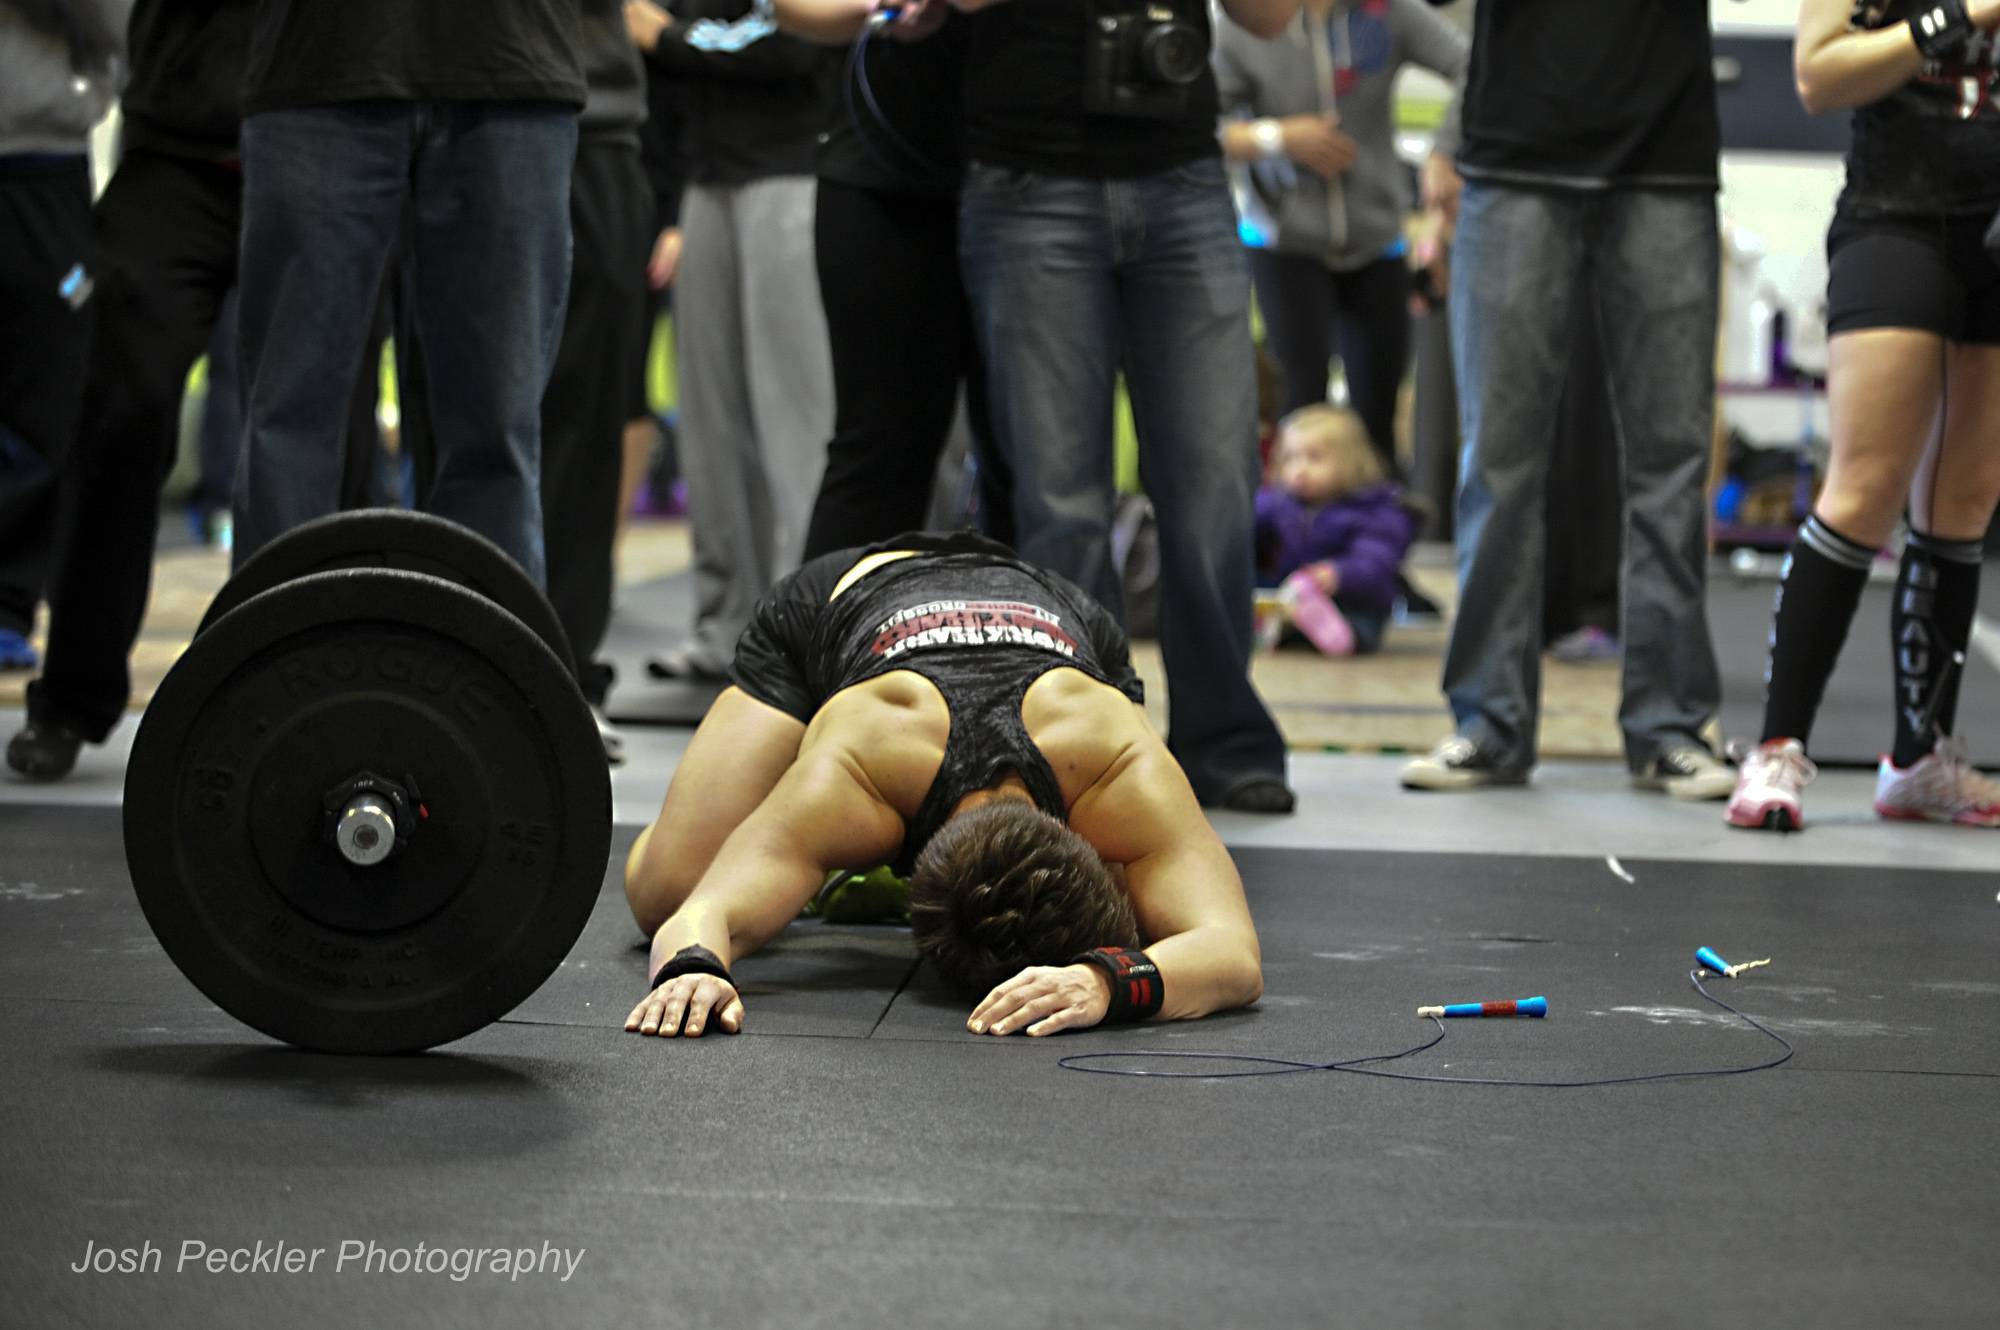 Jennifer Silva McDade, Bloomington, collapses after completing one of the three qualifying workouts at the April 20 Athena Classic Hosted by Elite Athletic Development / CrossFit Arlington Heights.